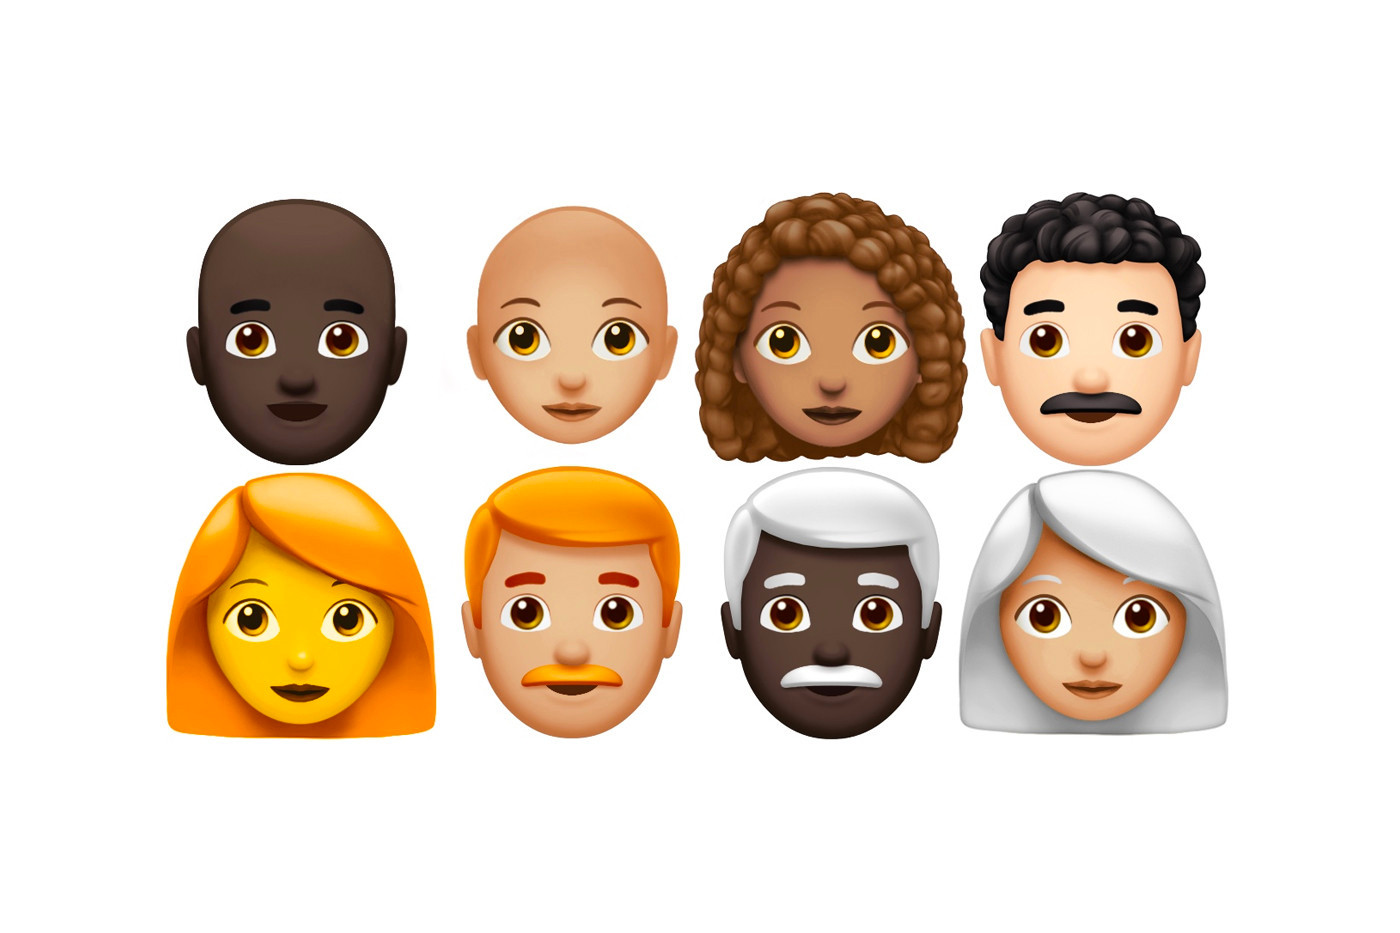 70 Nuovi Emoticon per iOS 12.1 di Apple